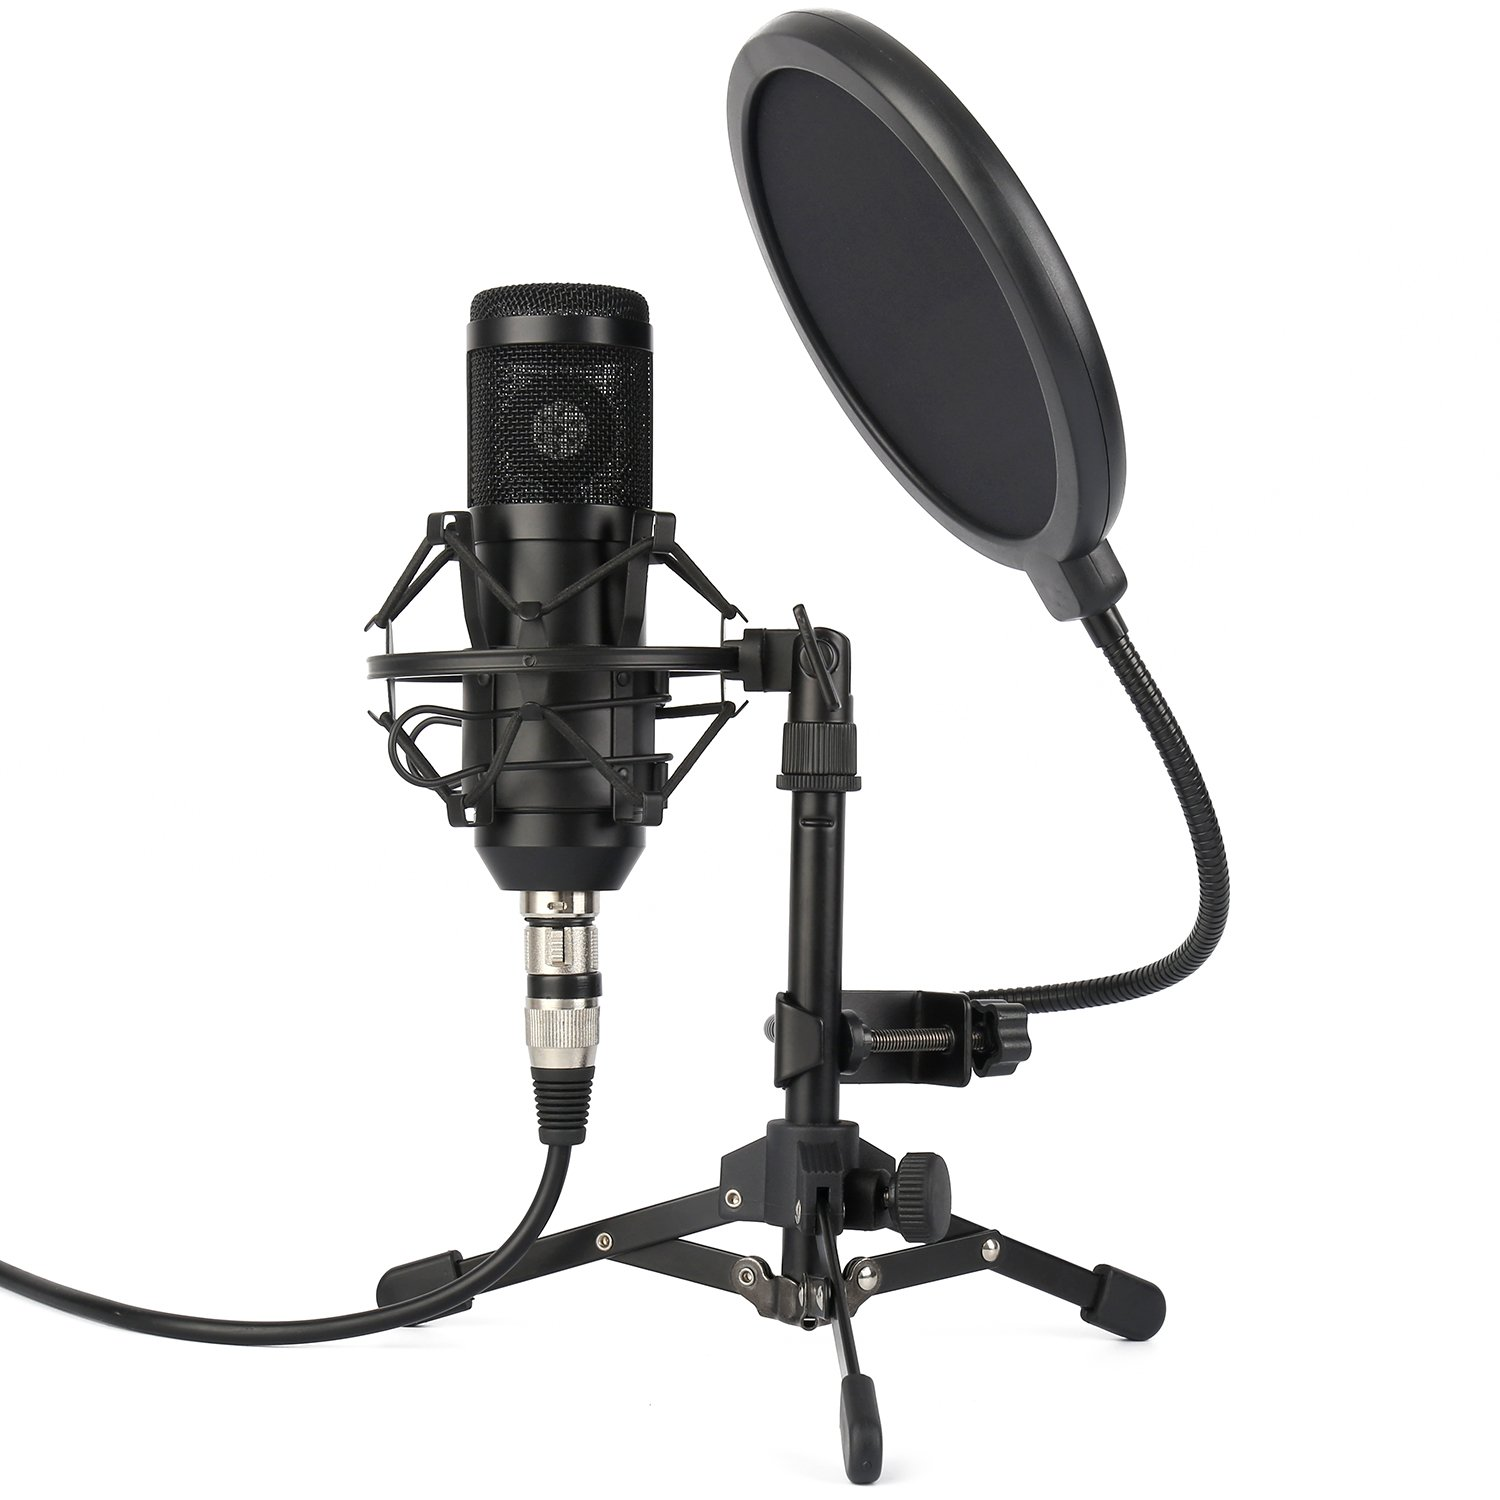 ZINGYOU ZY-801 Professional Studio Microphone, Desktop Computer Cardioid Condenser Mic with Tripod for PC Recording, Broadcasting (Black) by ZINGYOU